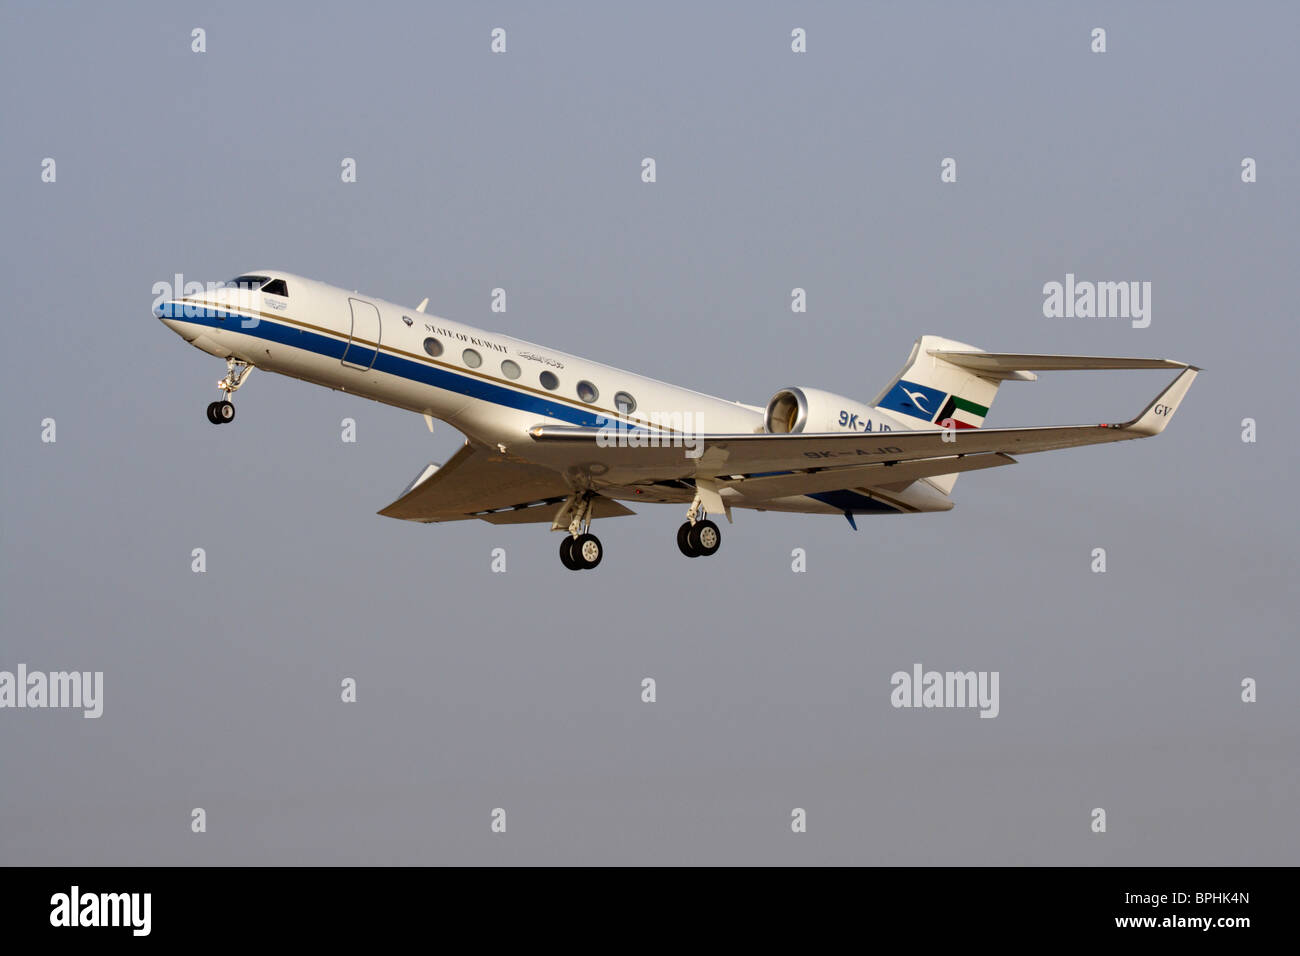 Government of Kuwait Gulfstream V executive jet, used in an official VIP transport role, taking off - Stock Image